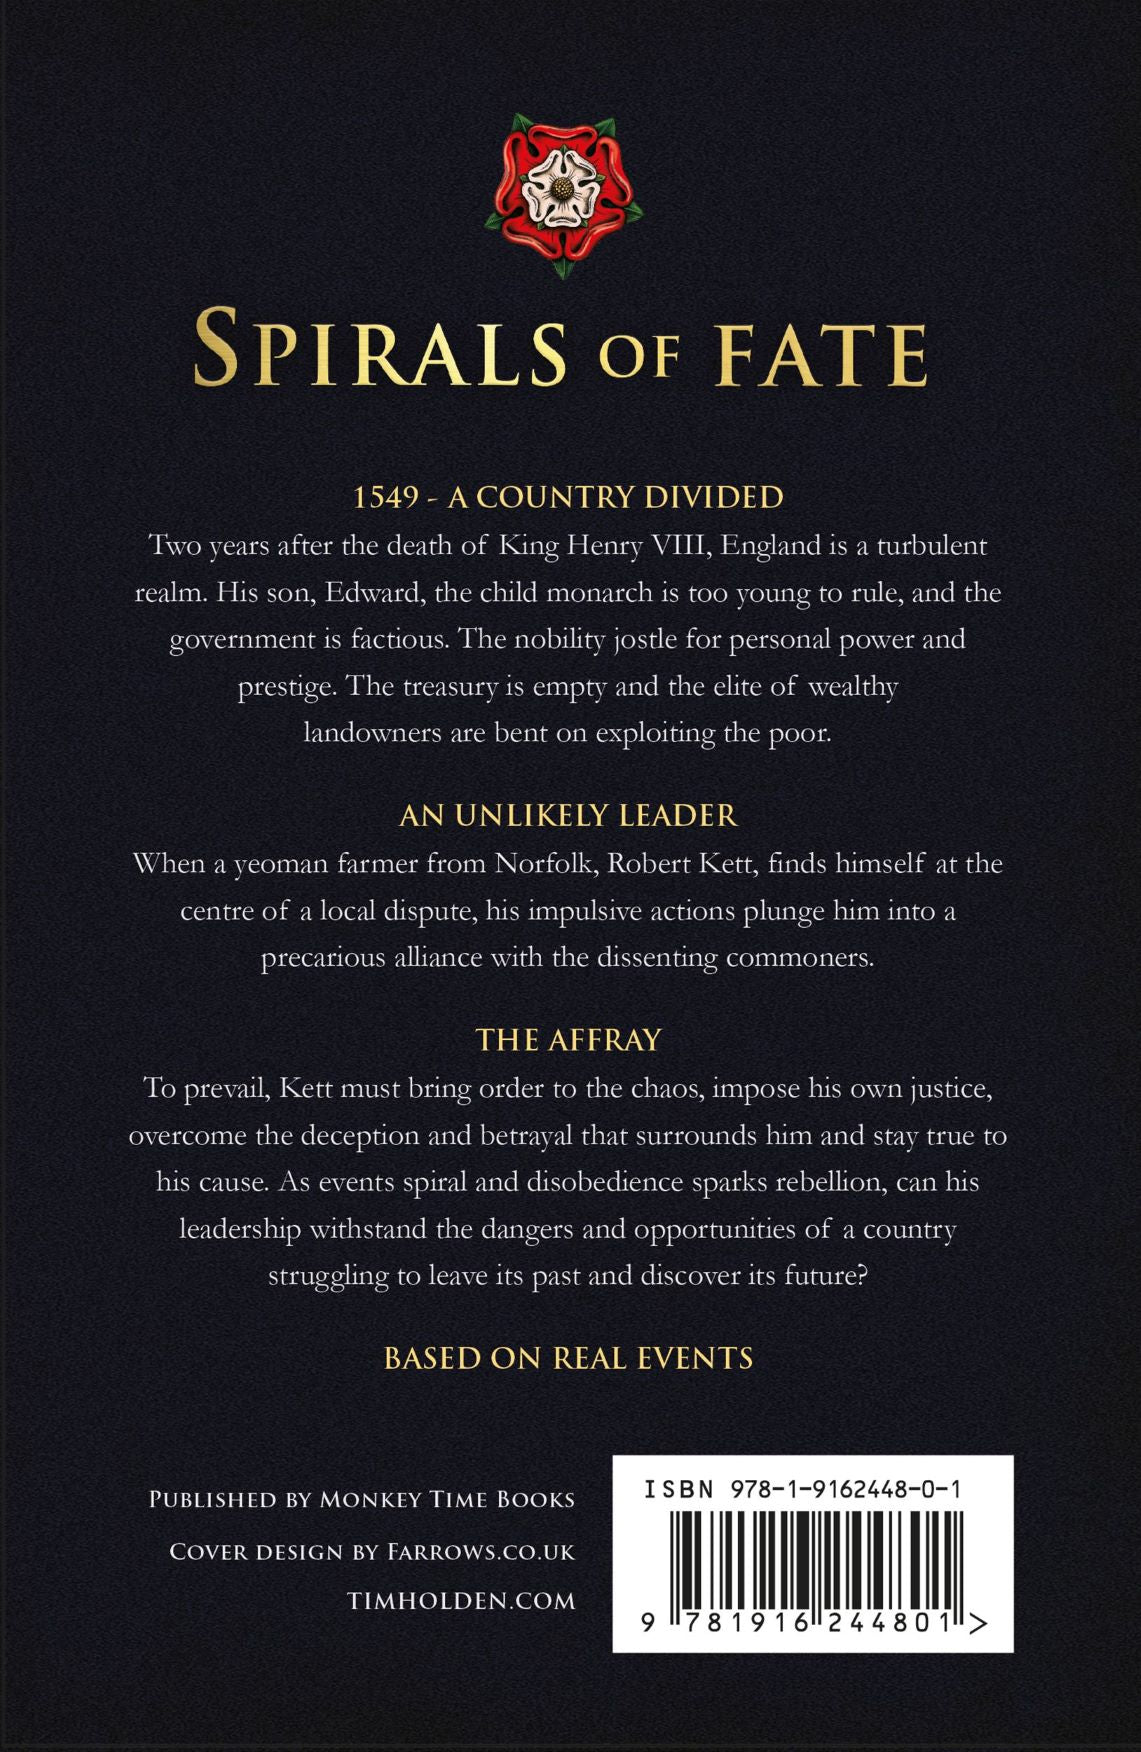 Spirals of Fate